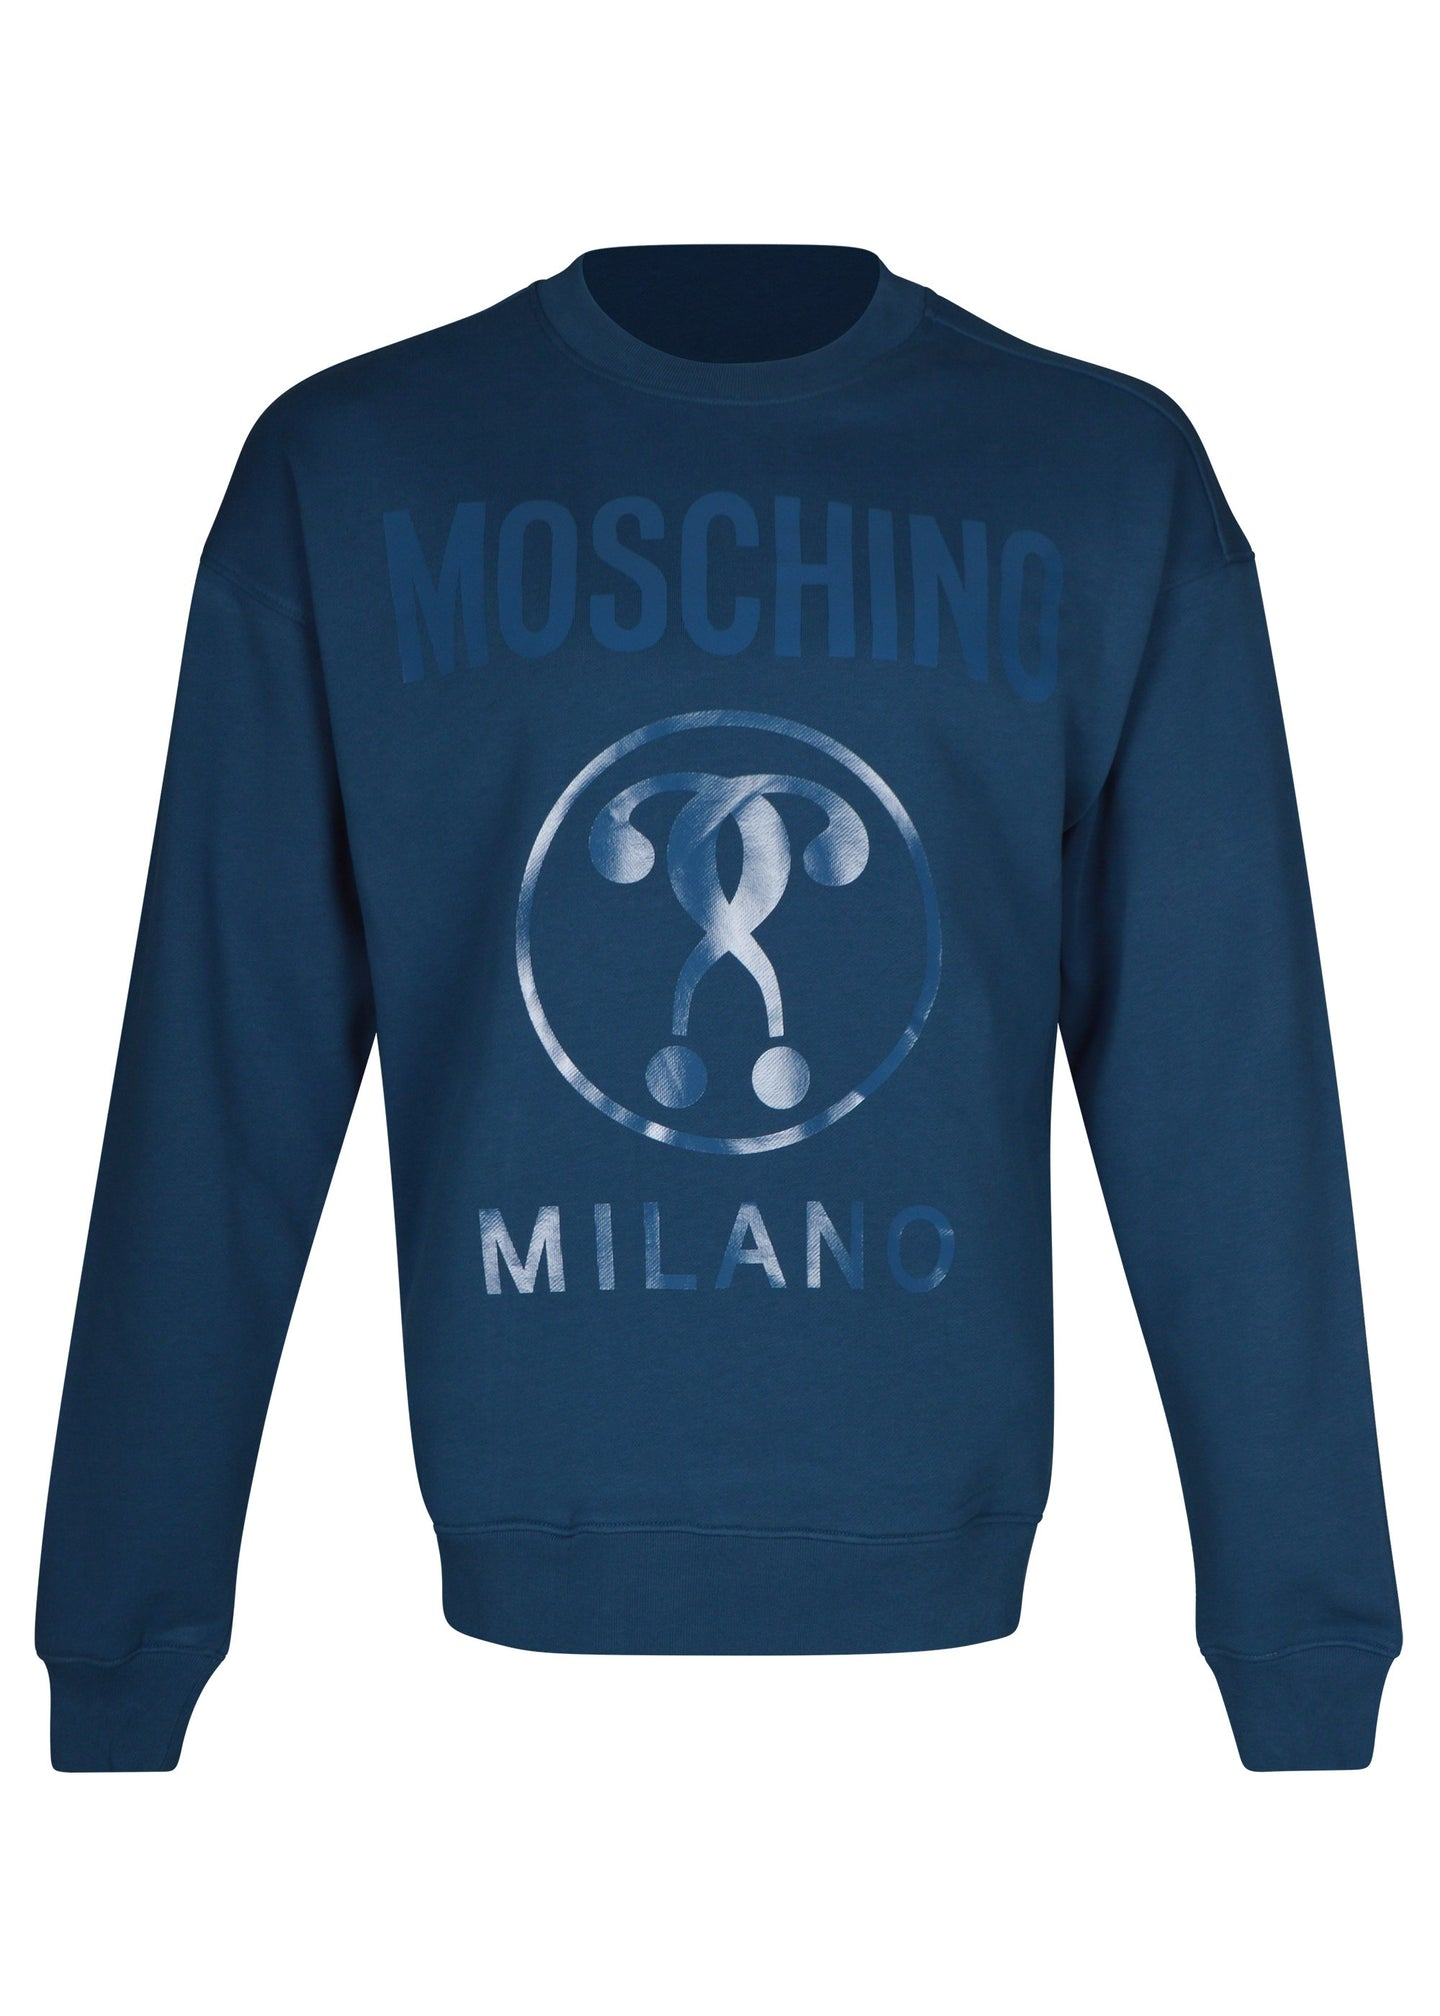 Moschino - Crew Neck Double Question Mark Print - 100020 - A17047027 - Blue